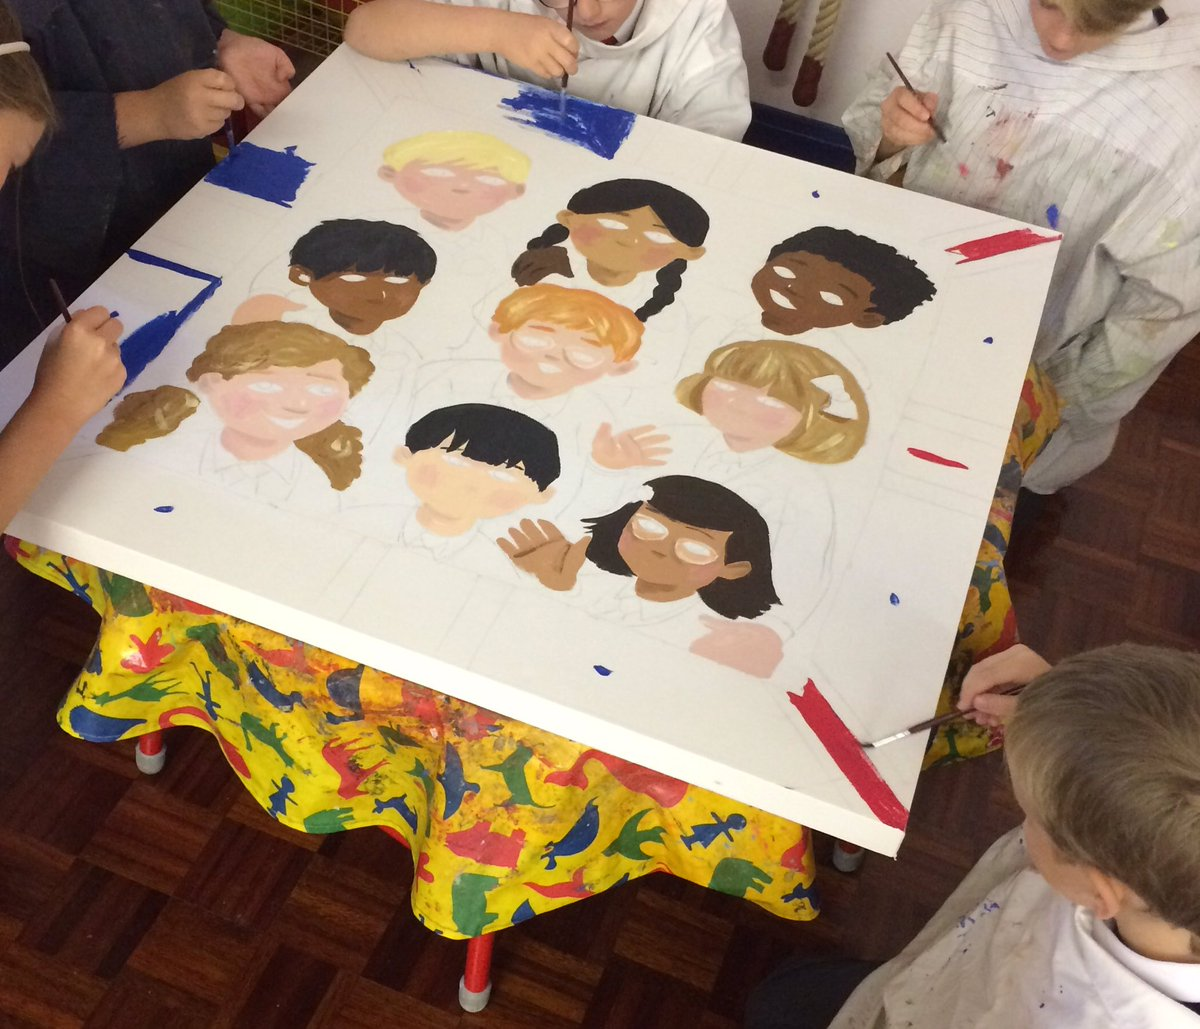 st thomas ce school on twitter more amazing artwork from our st thomas ce school on twitter more amazing artwork from our children we love our british values canvas shelaghmcn from y5 t co ljlwbo1hky